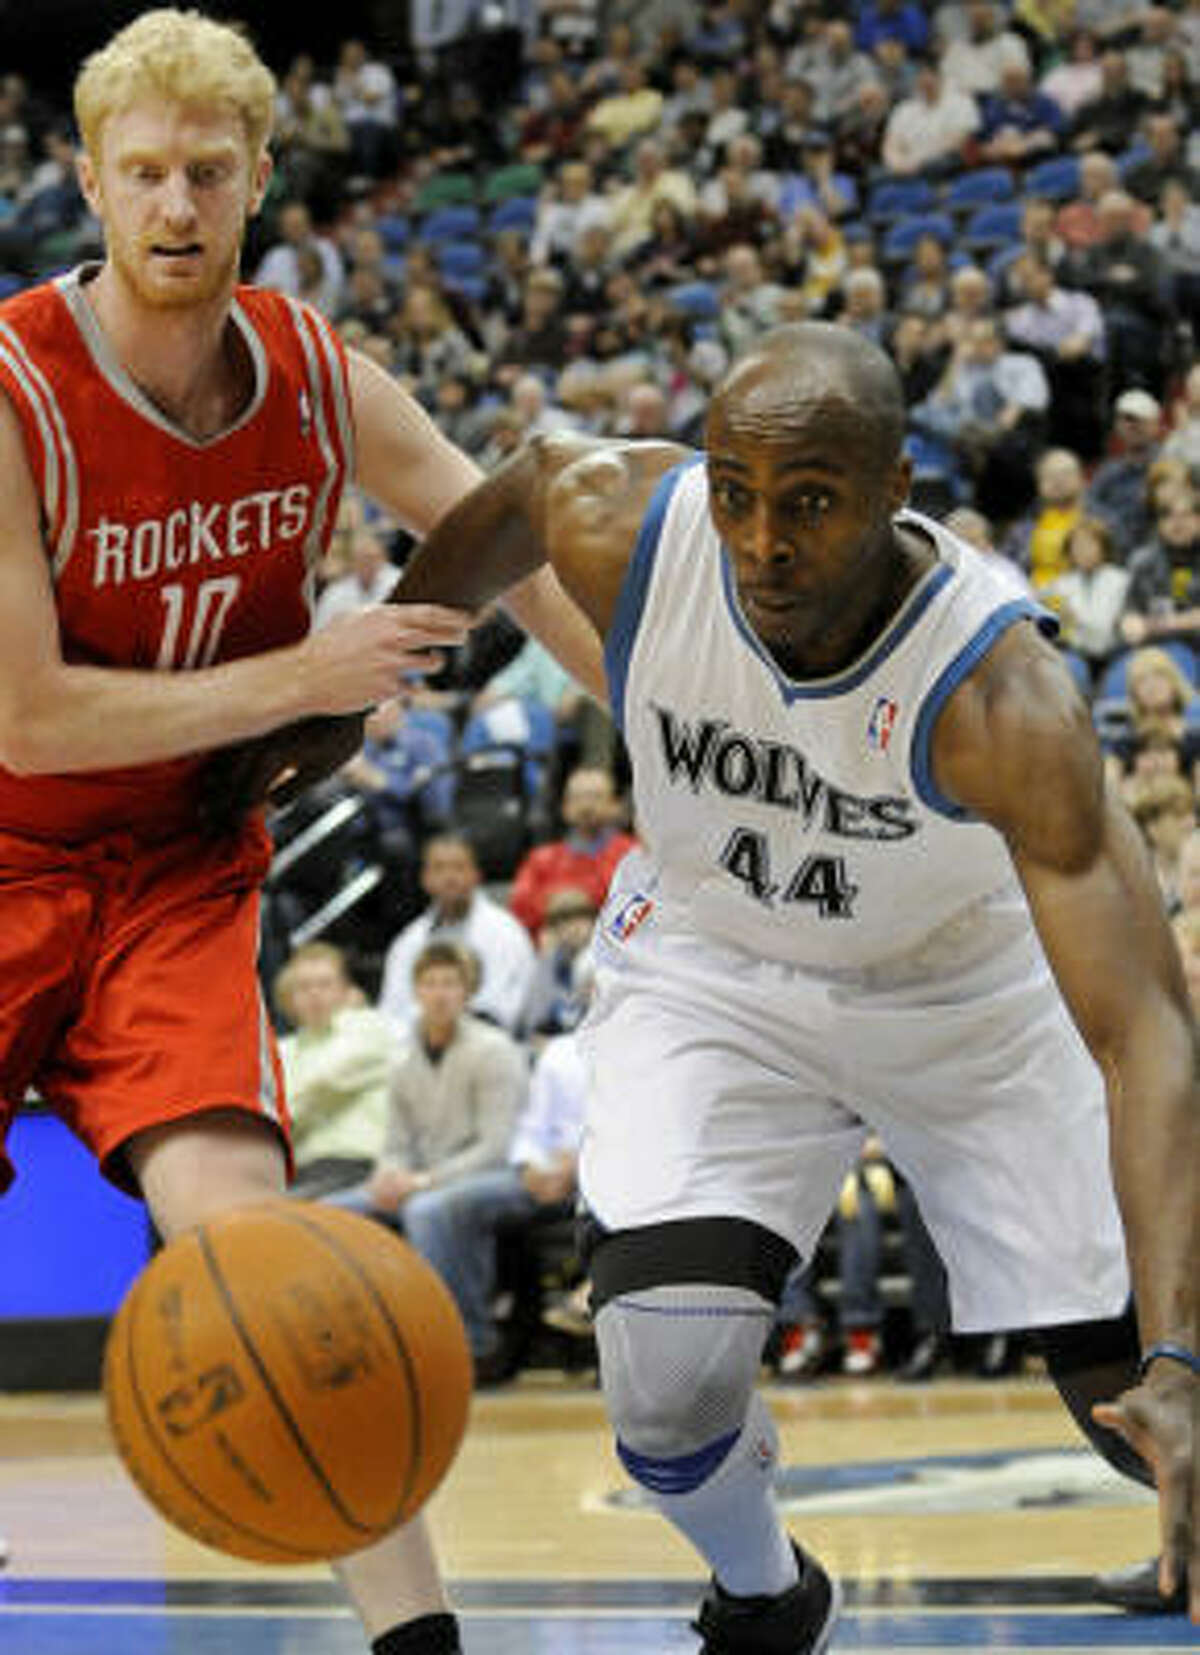 Rockets forward Chase Budinger, left, tries to hold back Timberwolves' Anthony Tolliver as he races for the loose ball.